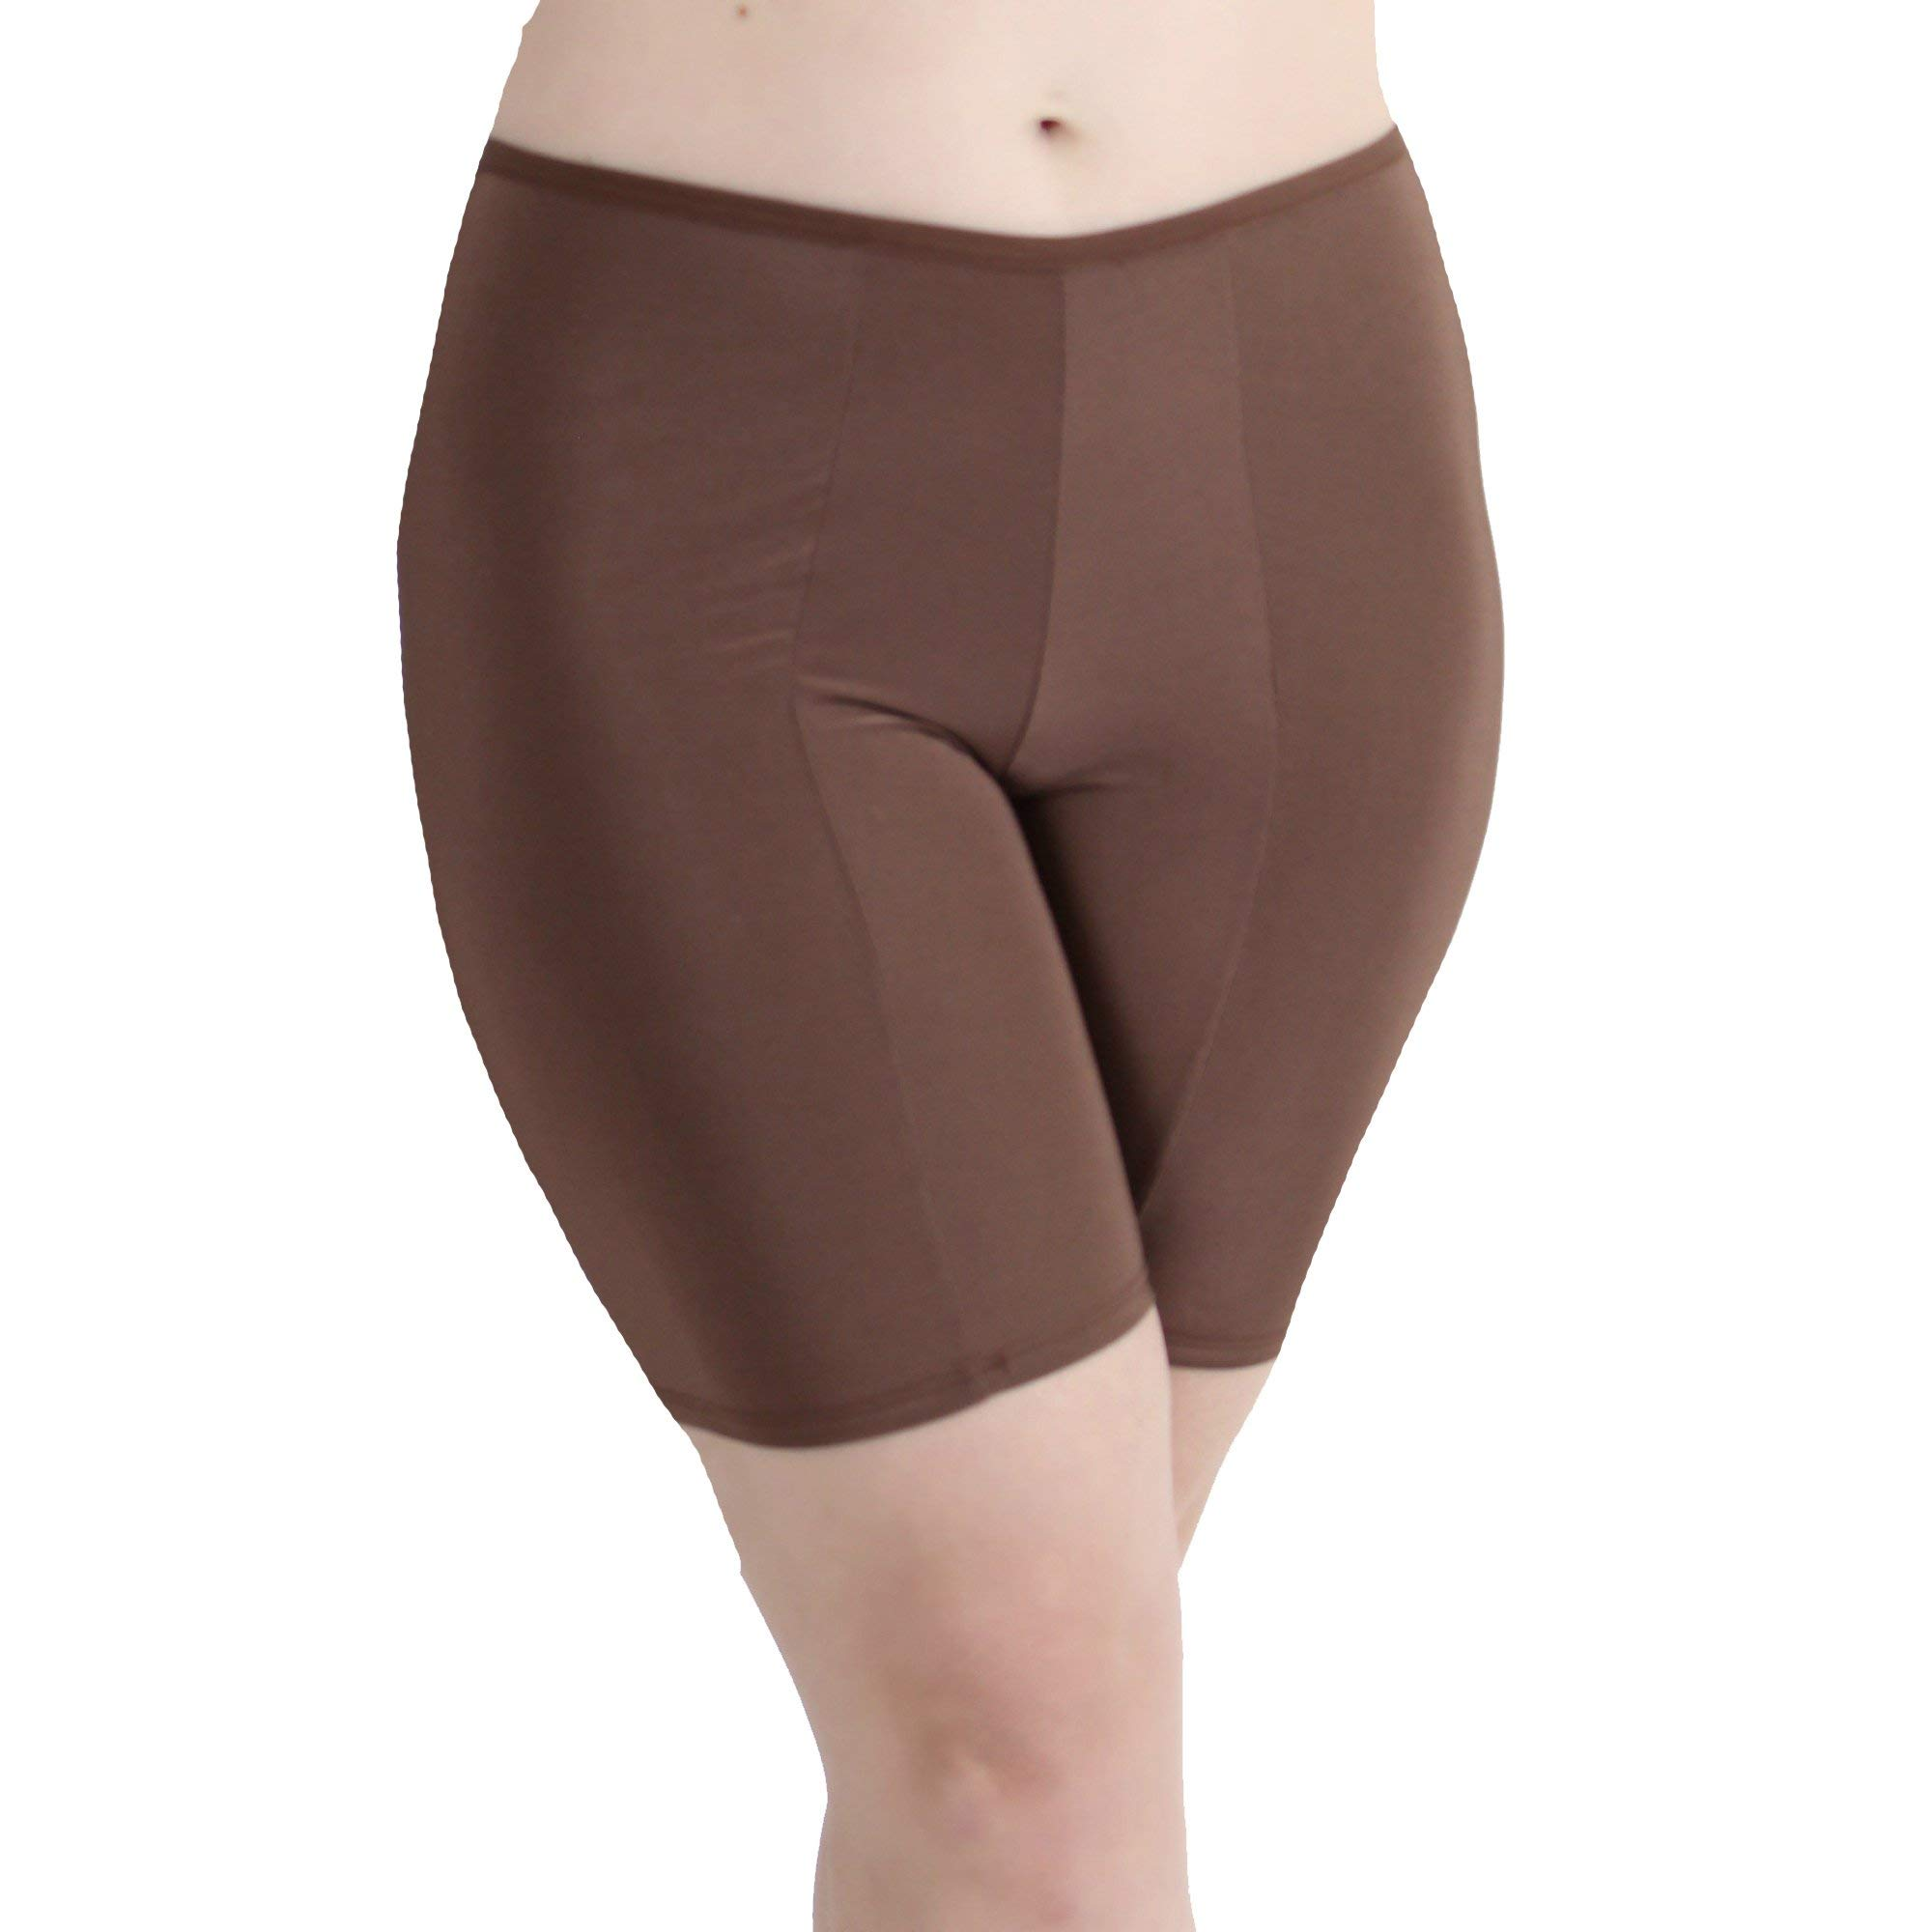 Undersummers Classic Shortlette: Plus Size Anti Thigh Chafing Slip Shorts for Under Dresses(Small to 5X Plus Size)